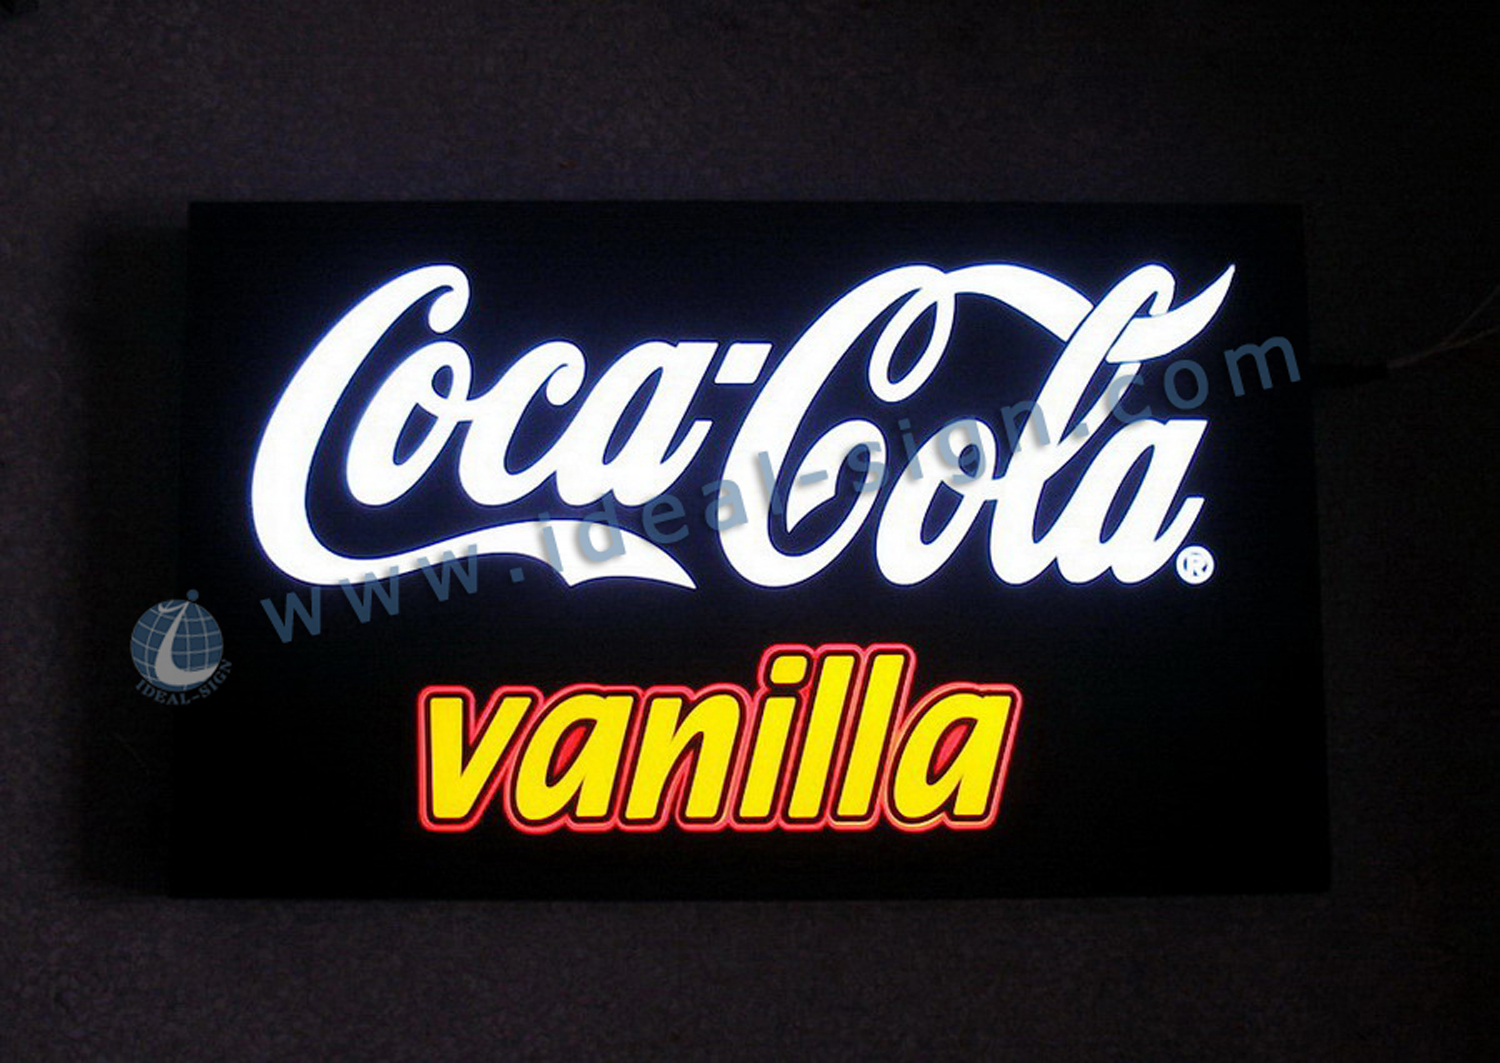 Coca Cola led lighted box